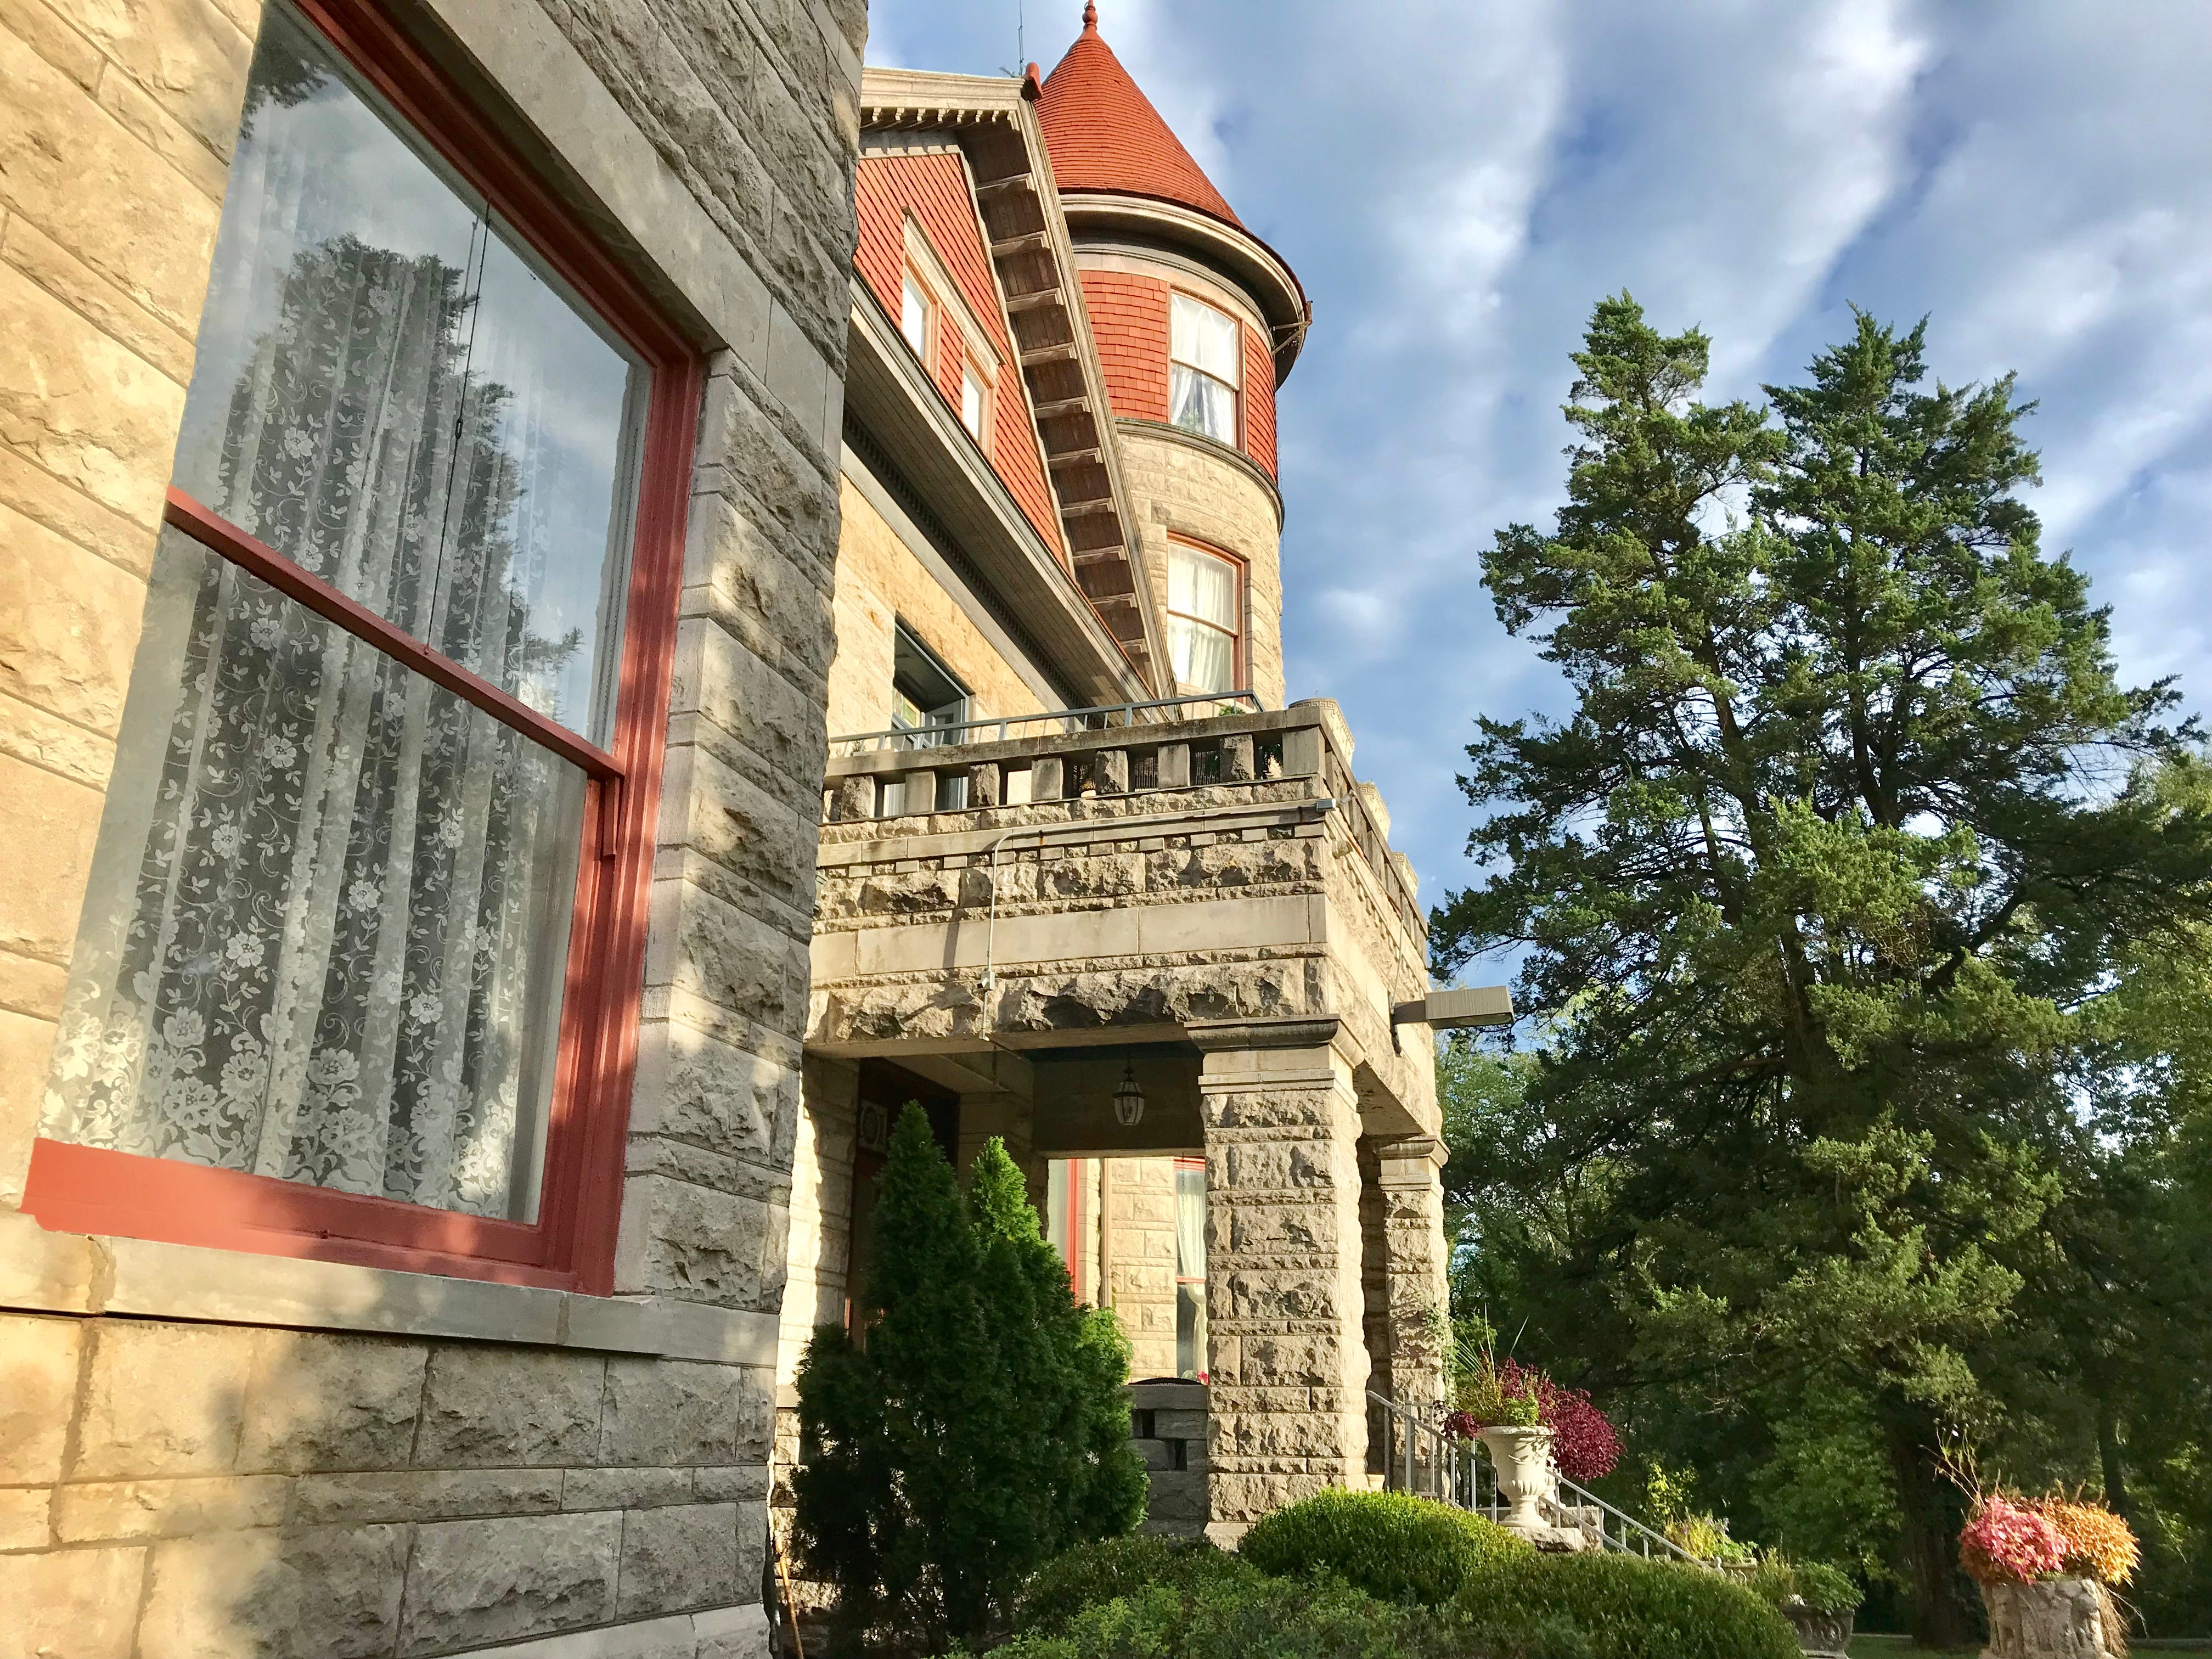 John O'Day hired 50 stone masons and brought them to Springfield from Germany to build a 27,000-square-foot mansion, which now operates as a bed and breakfast.  Construction took two years and was finished in 1892.